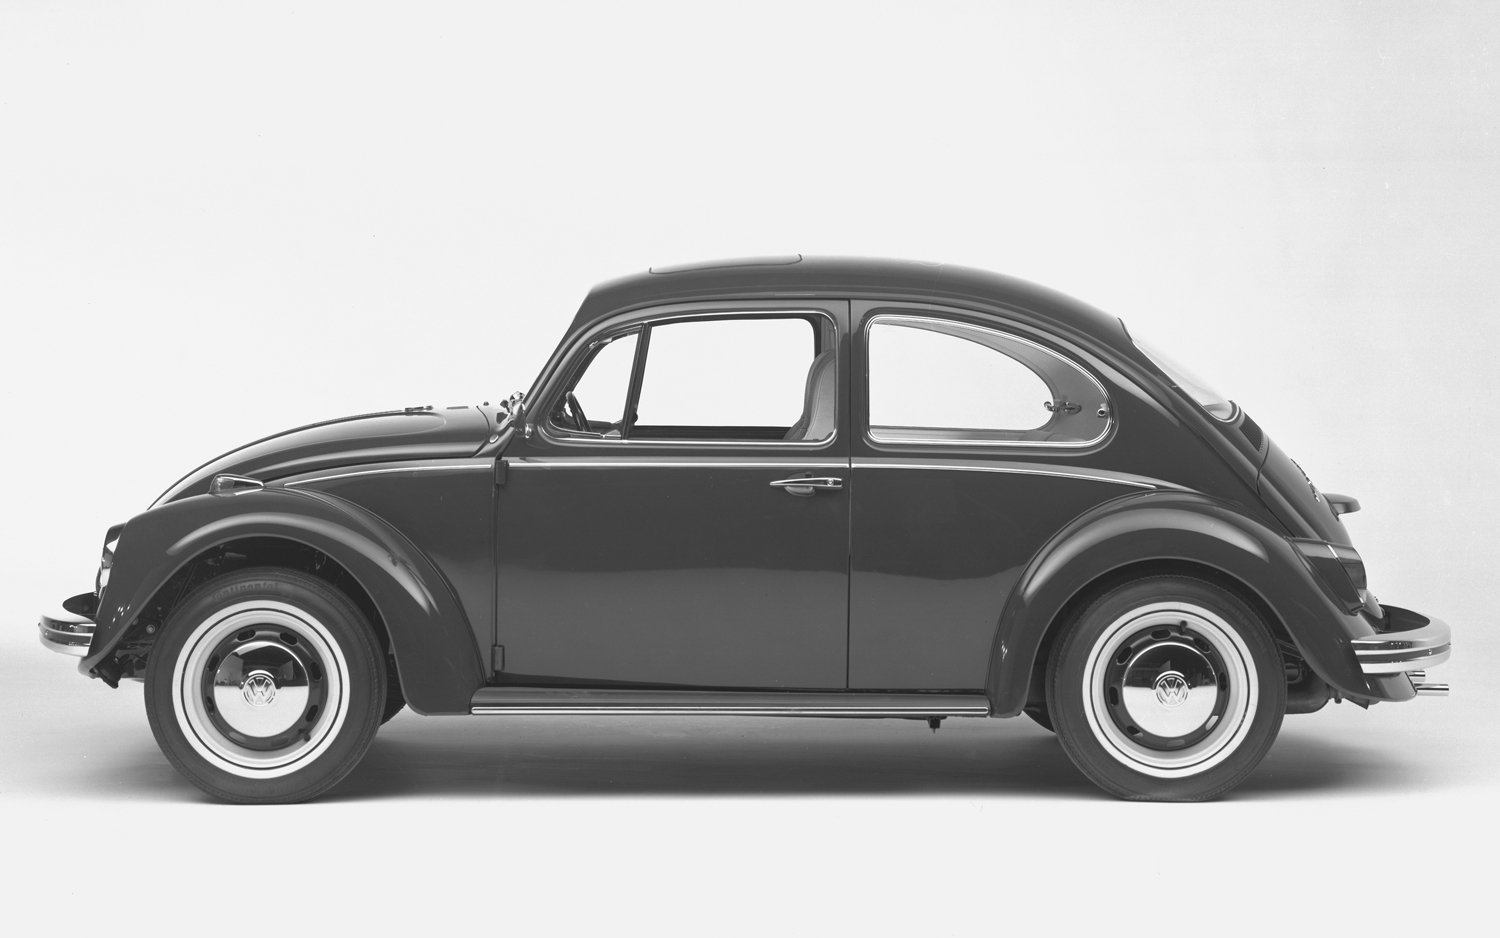 Volkswagen Beetle 1.5 1968 photo - 5